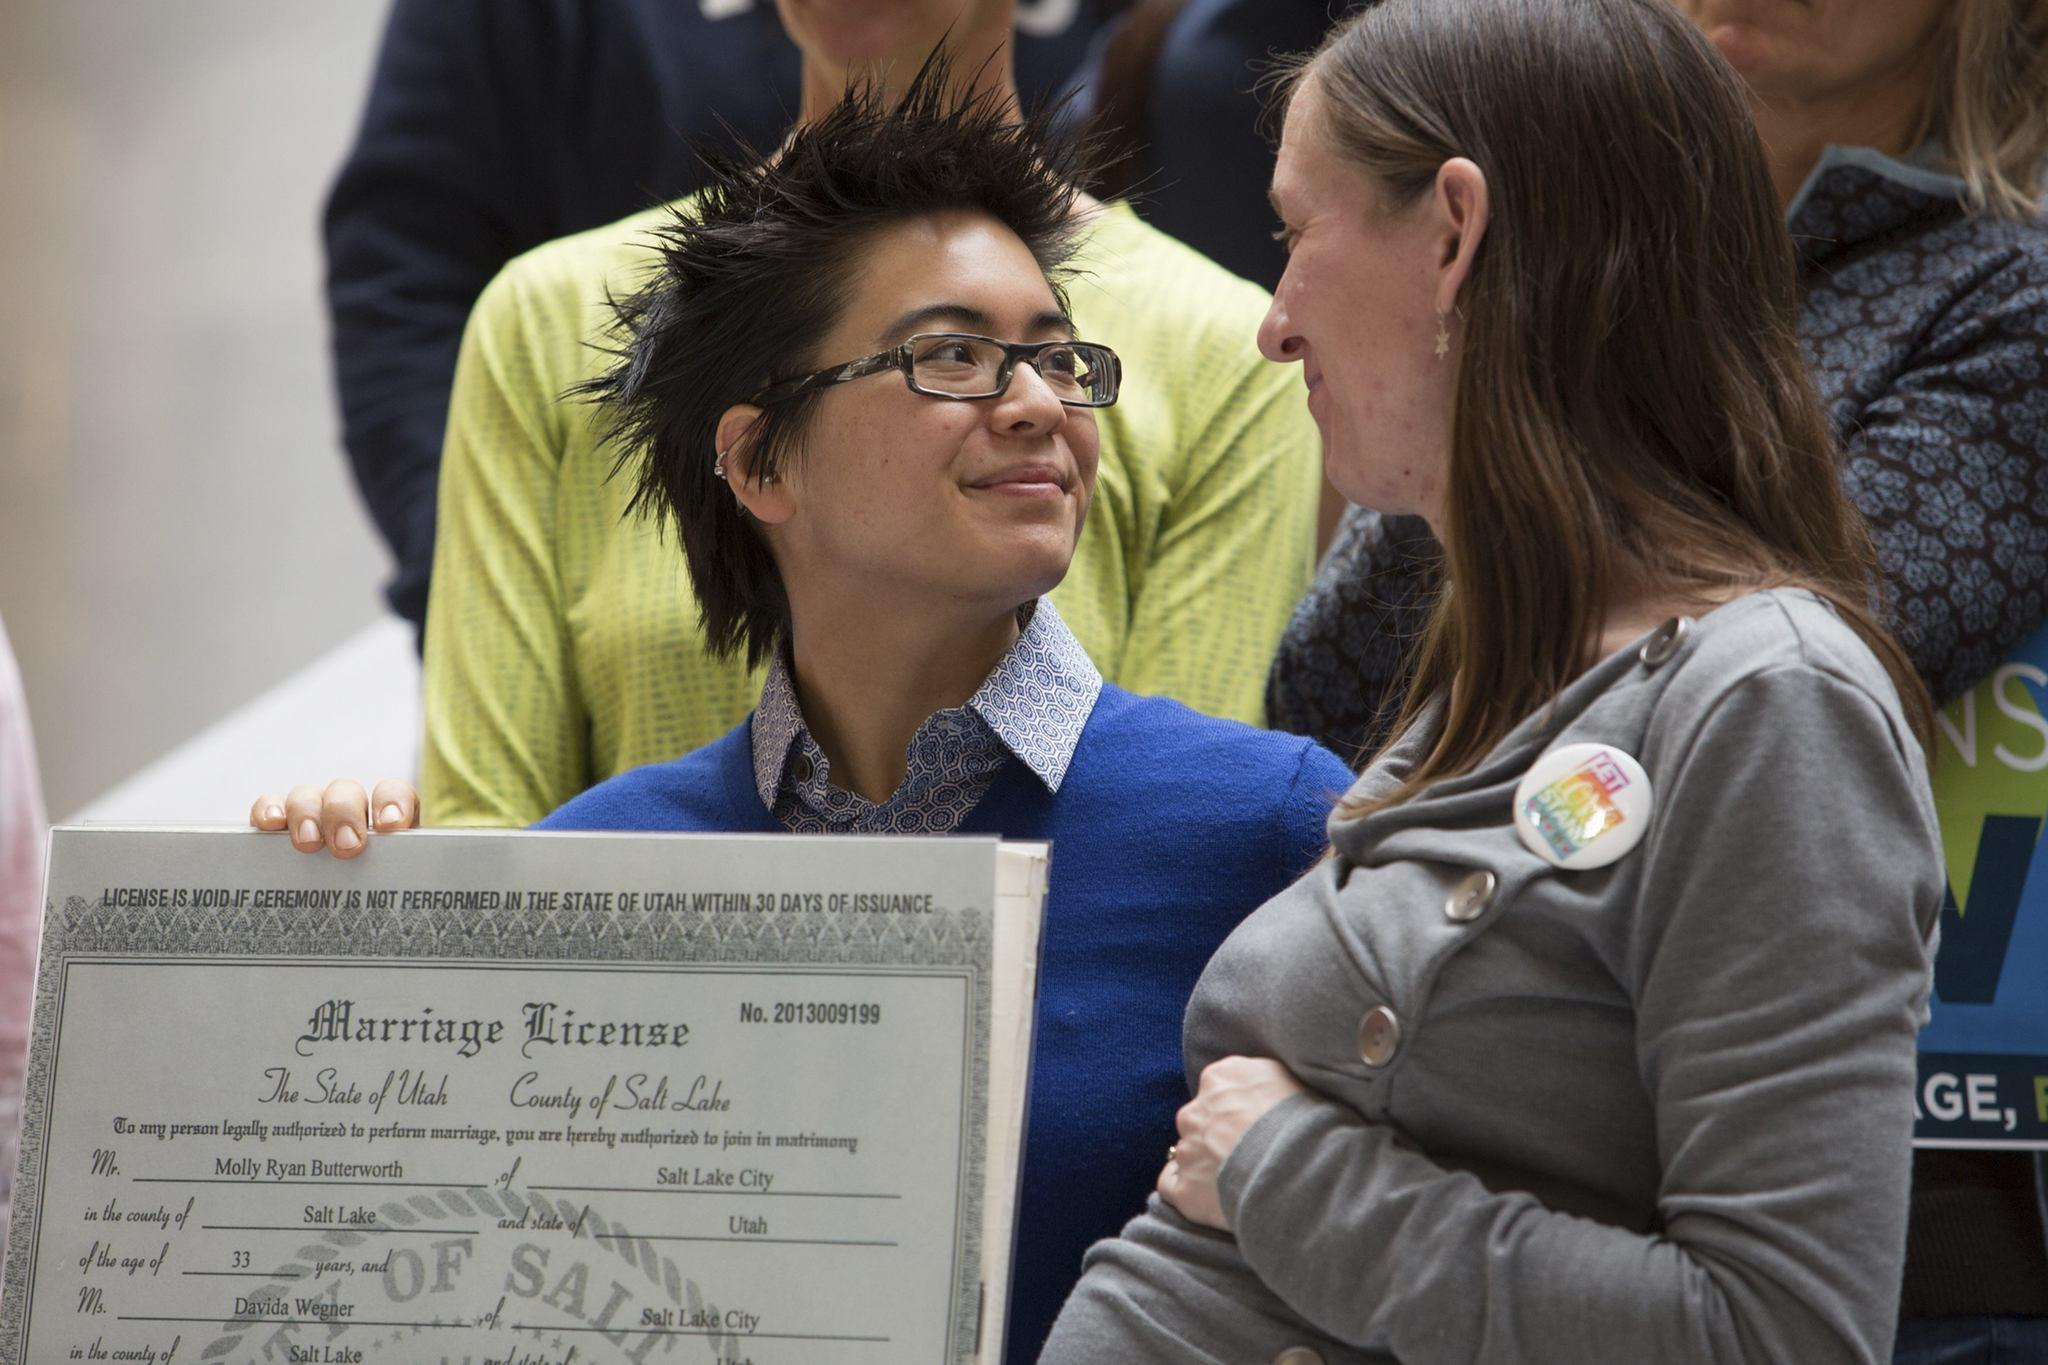 Molly Ryan Butterworth and Davida Wegner attend a rally supporting same-sex marriage at the state capitol in Salt Lake City, Utah on Jan. 10.